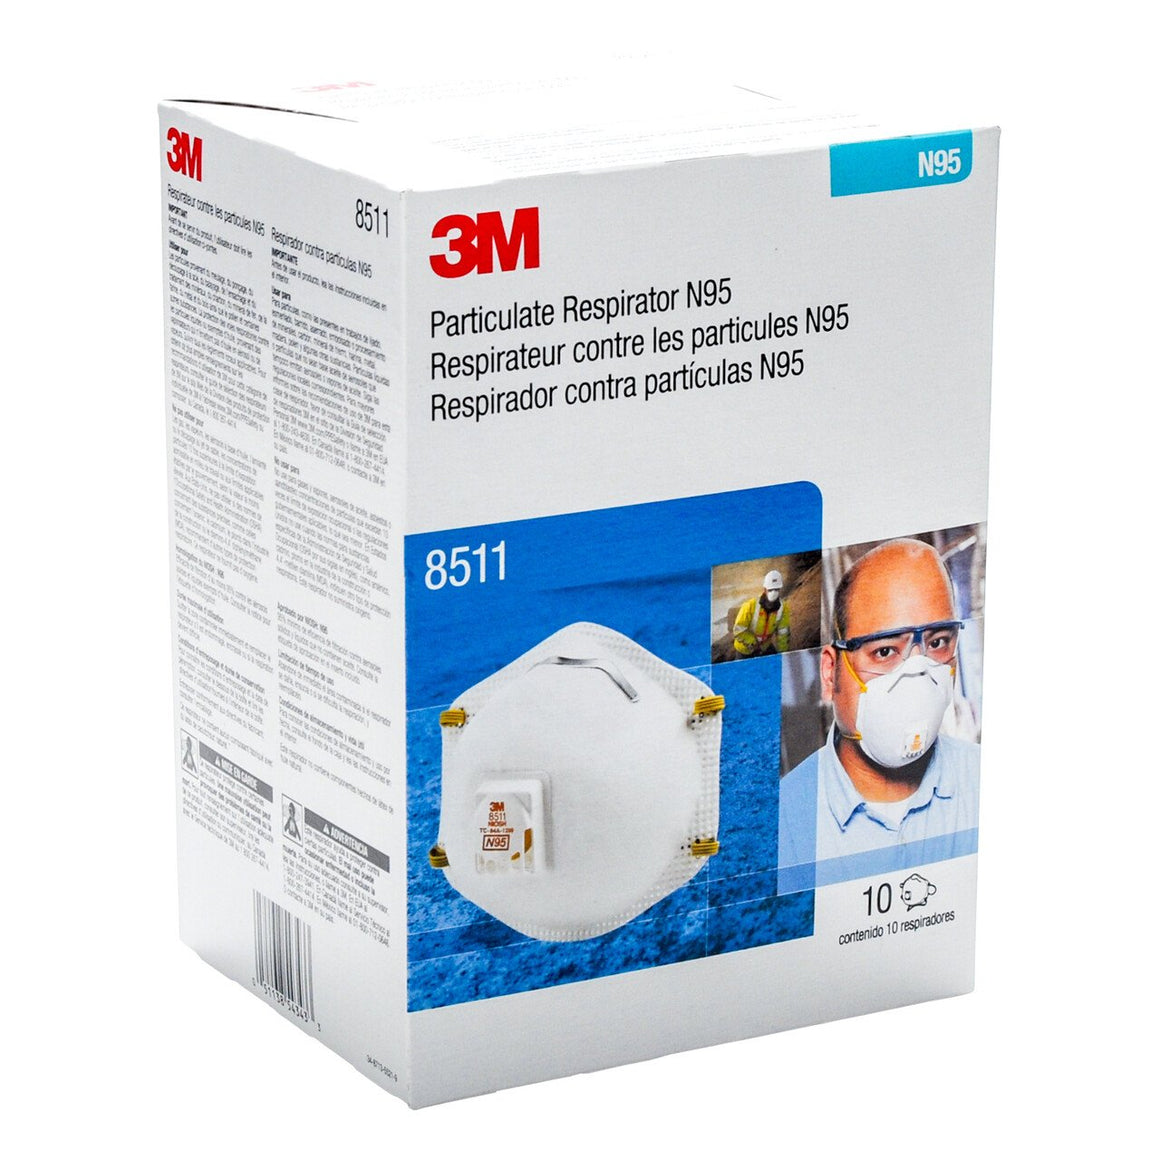 3M 8511 N95 Particulate Respirator with Cool Flow Exhalation Valve, Box of 10